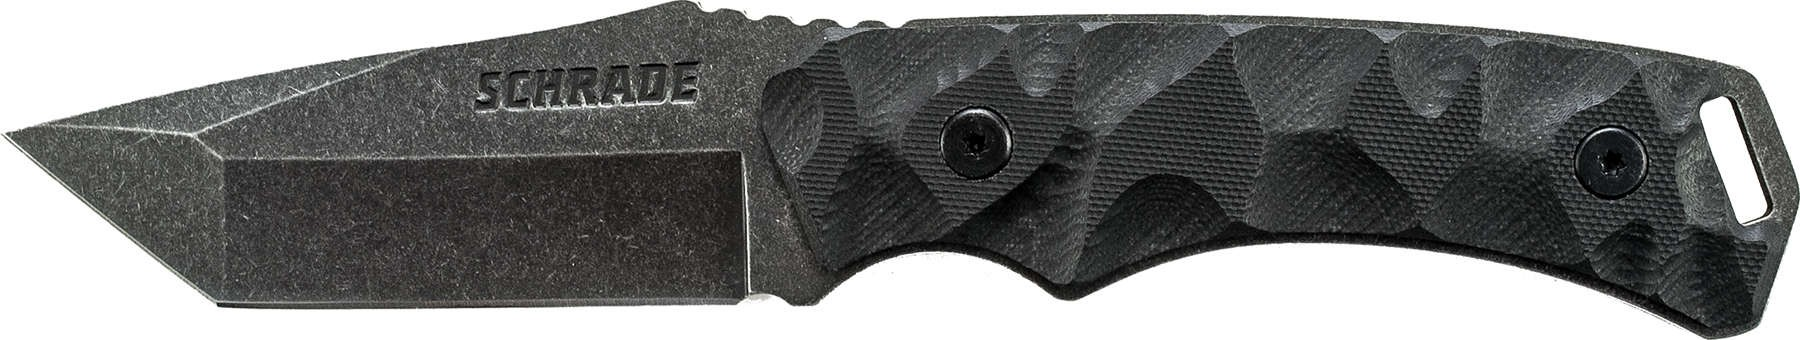 Schrade SCHF15 Full Tang Tanto Fixed Blade G-10 Handle